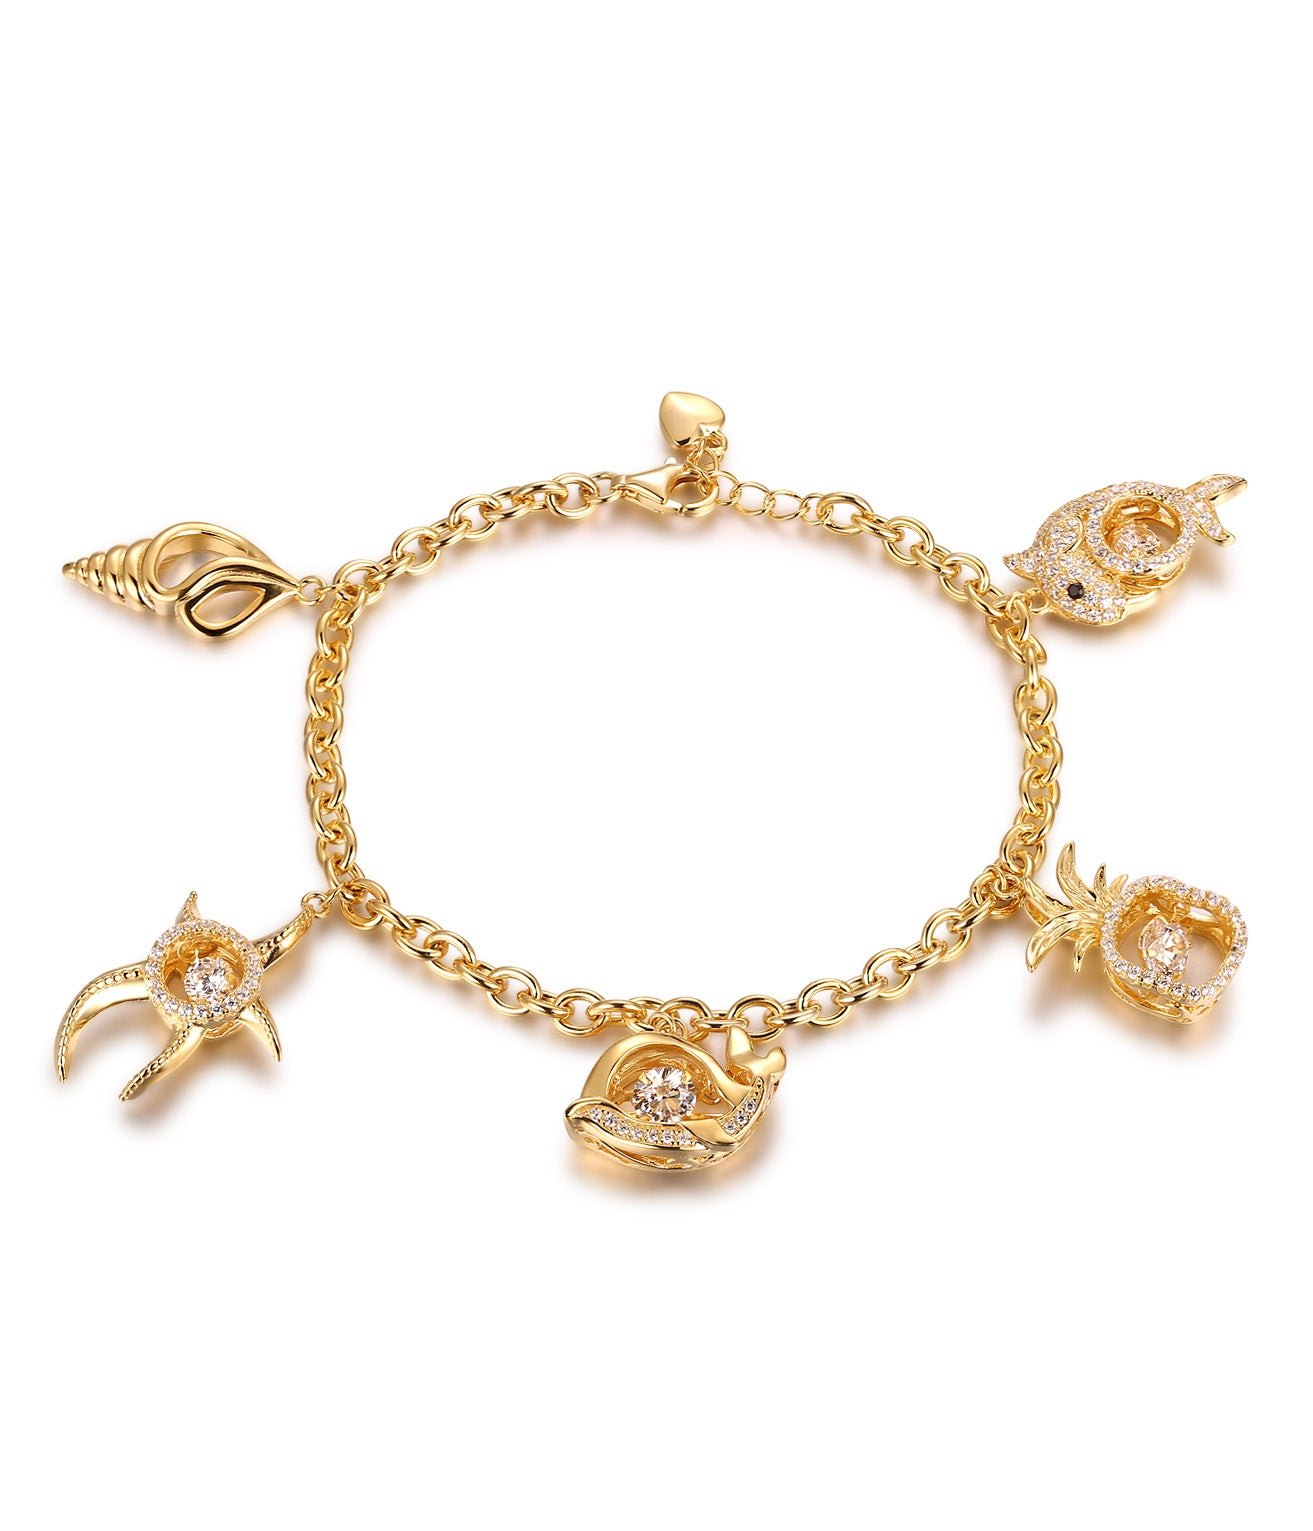 Kira Charm Bracelet, Starfish, Dolphin, Seashell Charms, 18K Yellow Plating